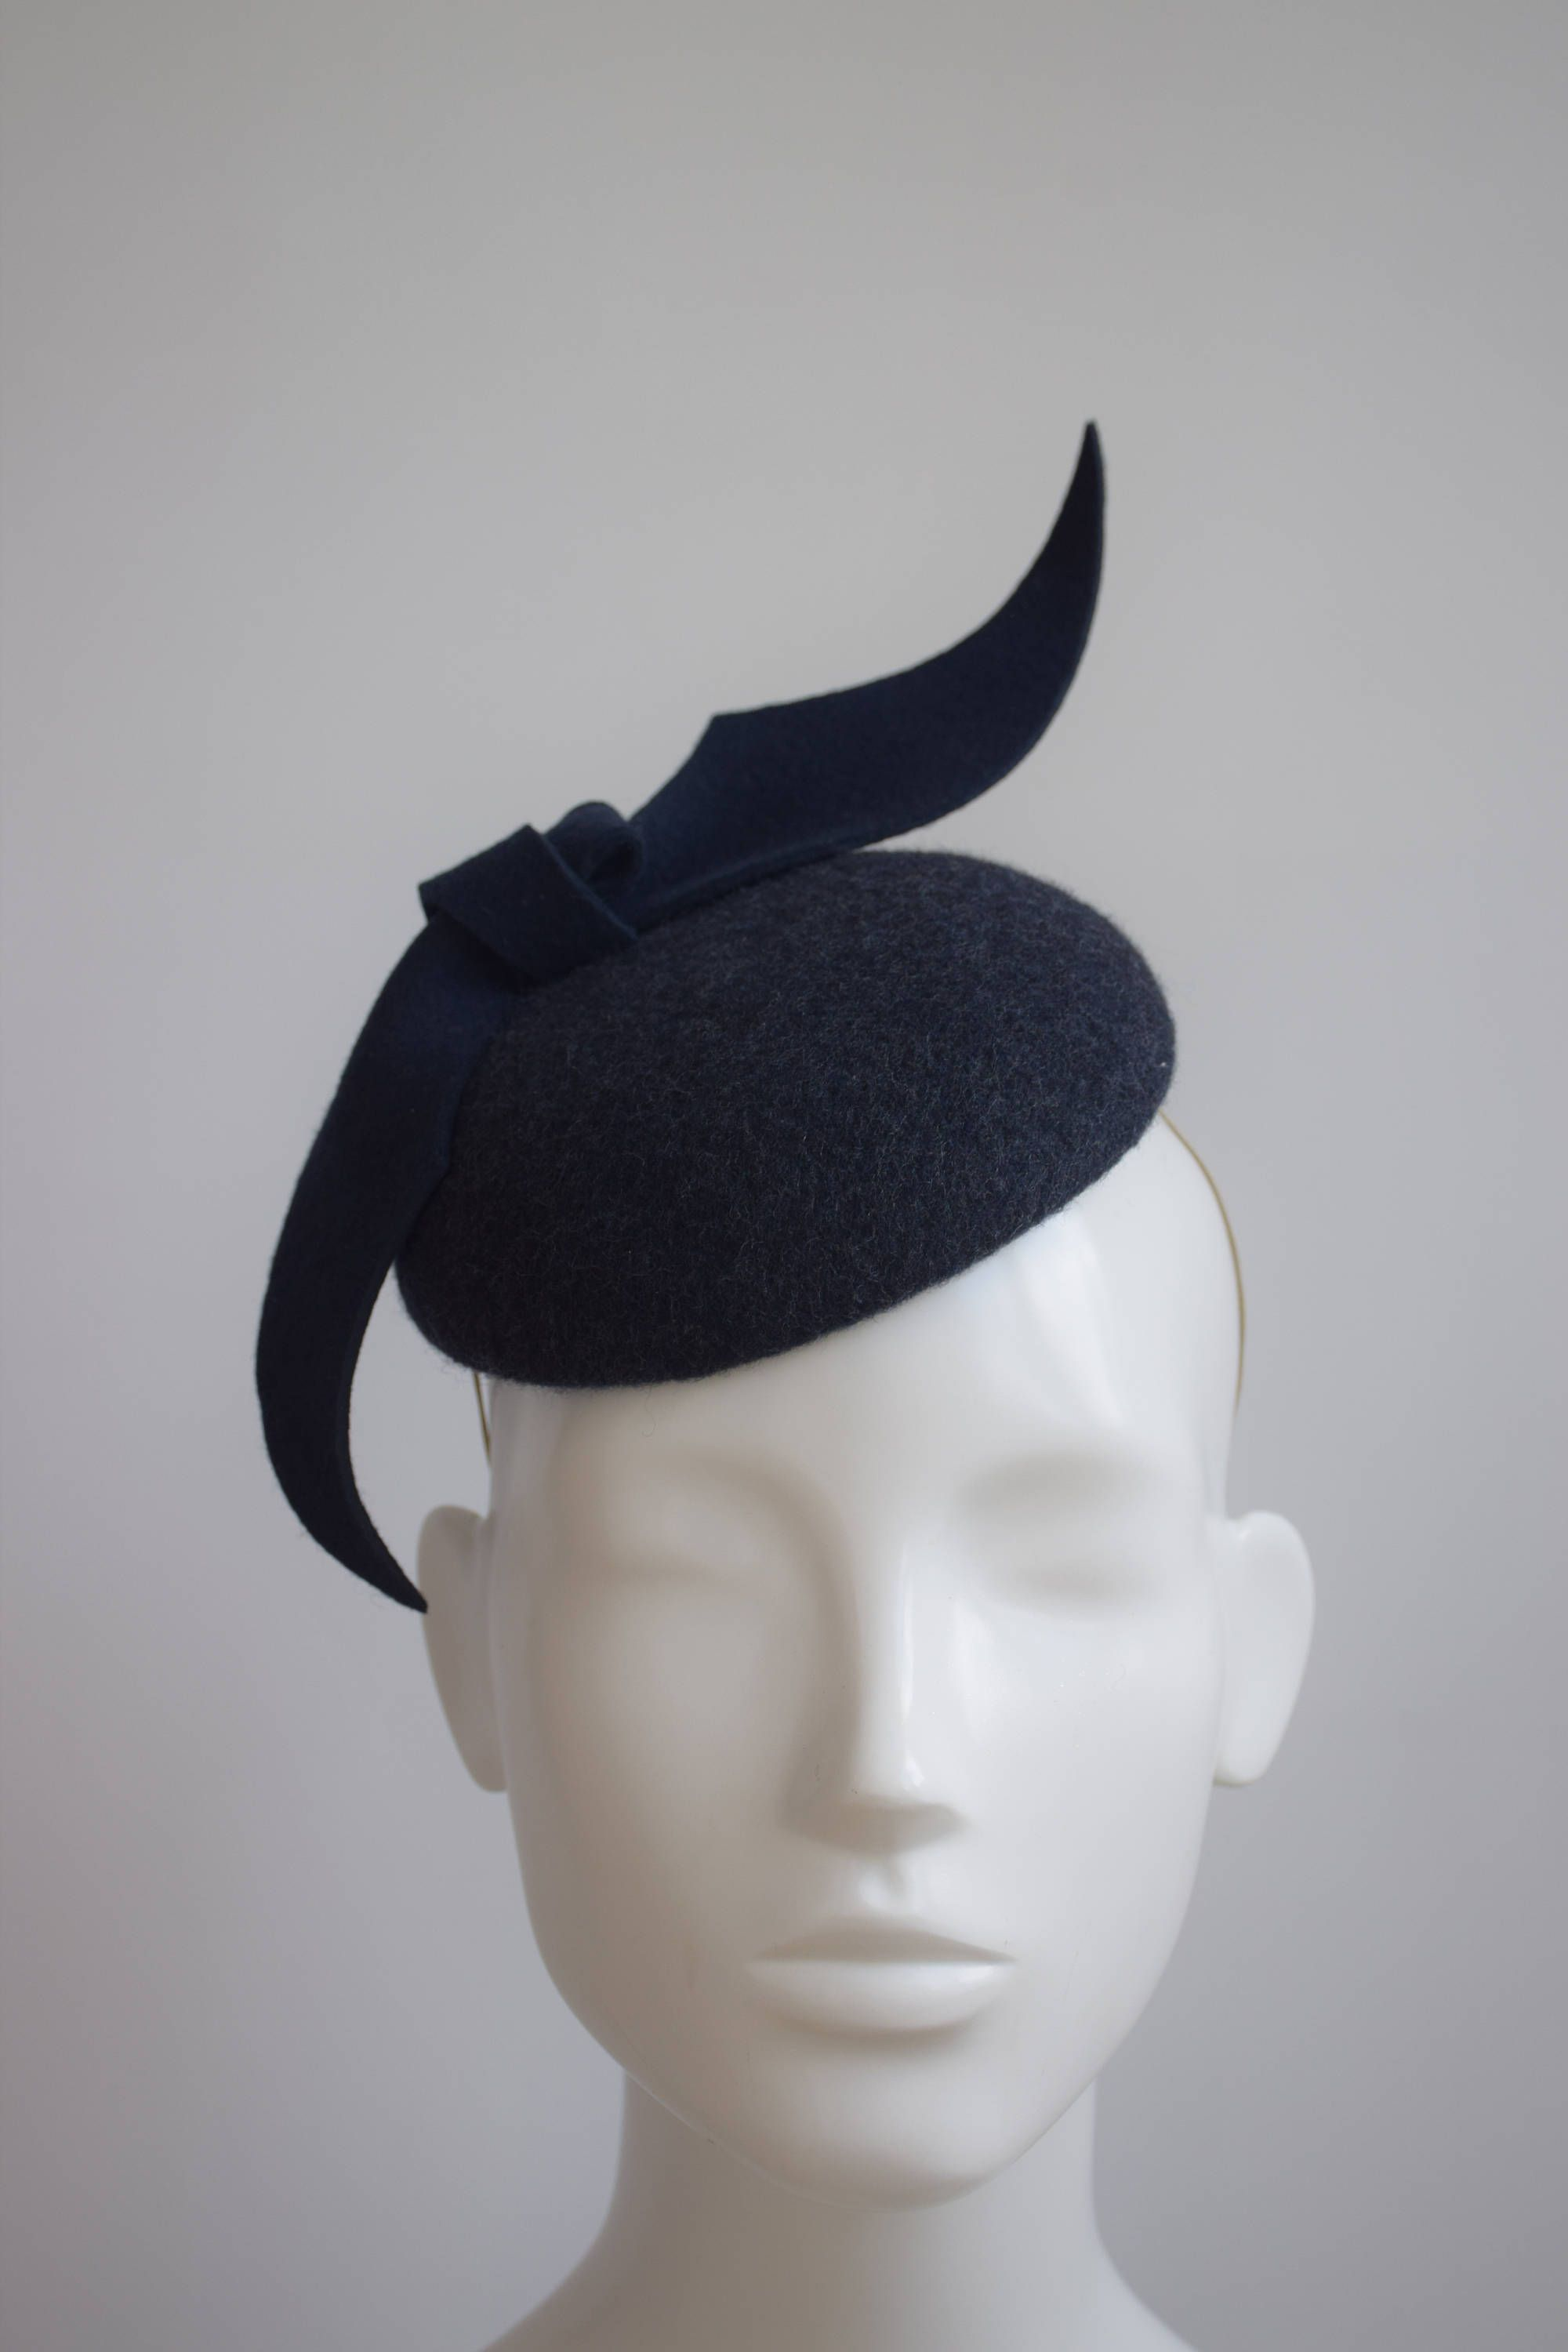 Navy Wool Felt Pillbox Hat - Navy Winter Wedding Fascinator - Winter Ladies  Day Racing Style Hat - Ascot Hat - Navy Felt Cocktail Hat - by ... d022f30d2d3